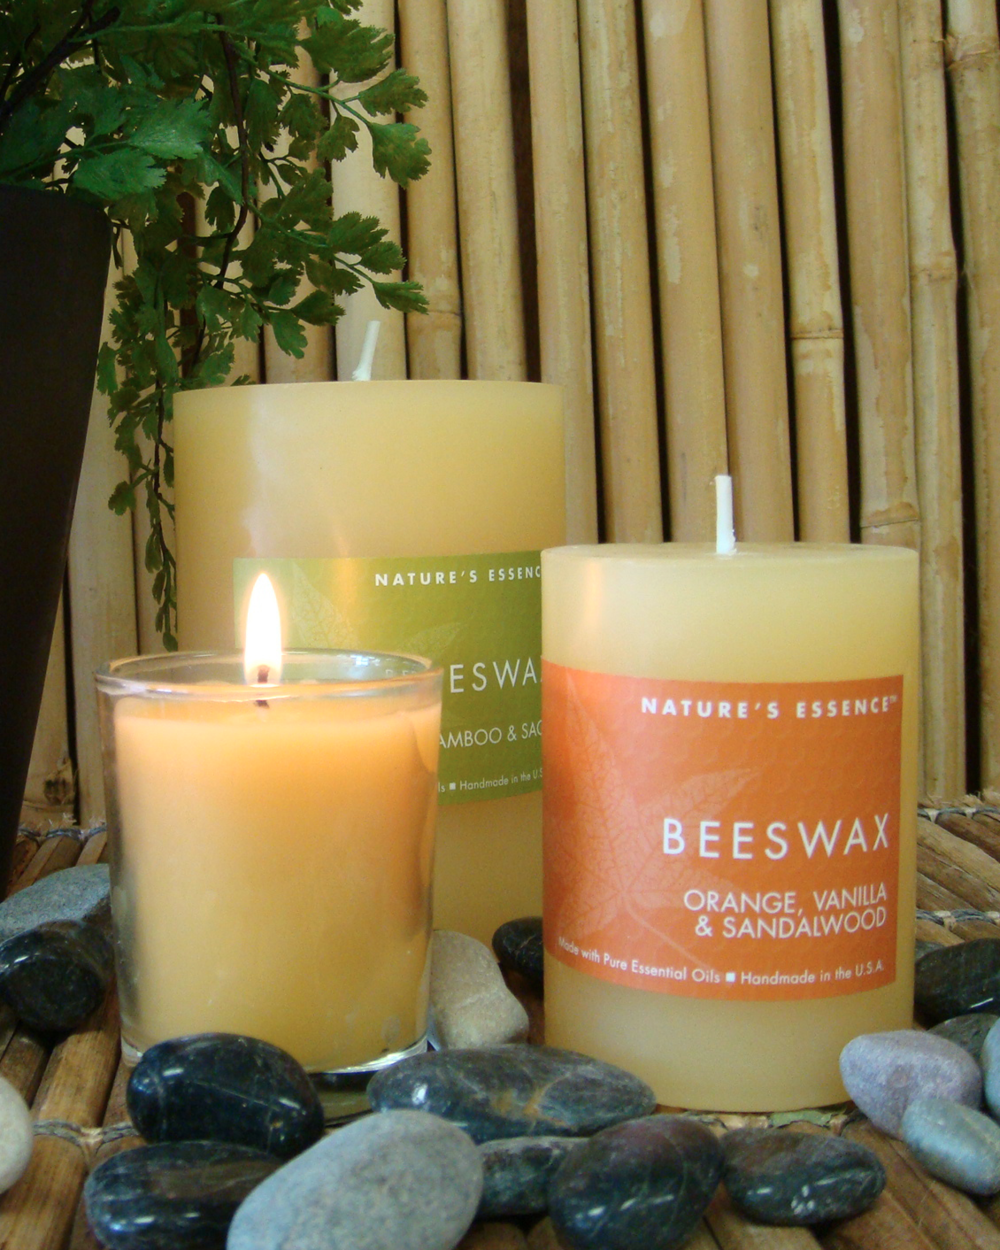 Beeswax Collection    Our Beeswax Collection features a buttery beeswax blend which burns even and clean and has a light fragrance in itself. Add to this nine complementary scents and you have a delight. The Beeswax collection comes in pillars, candle tins